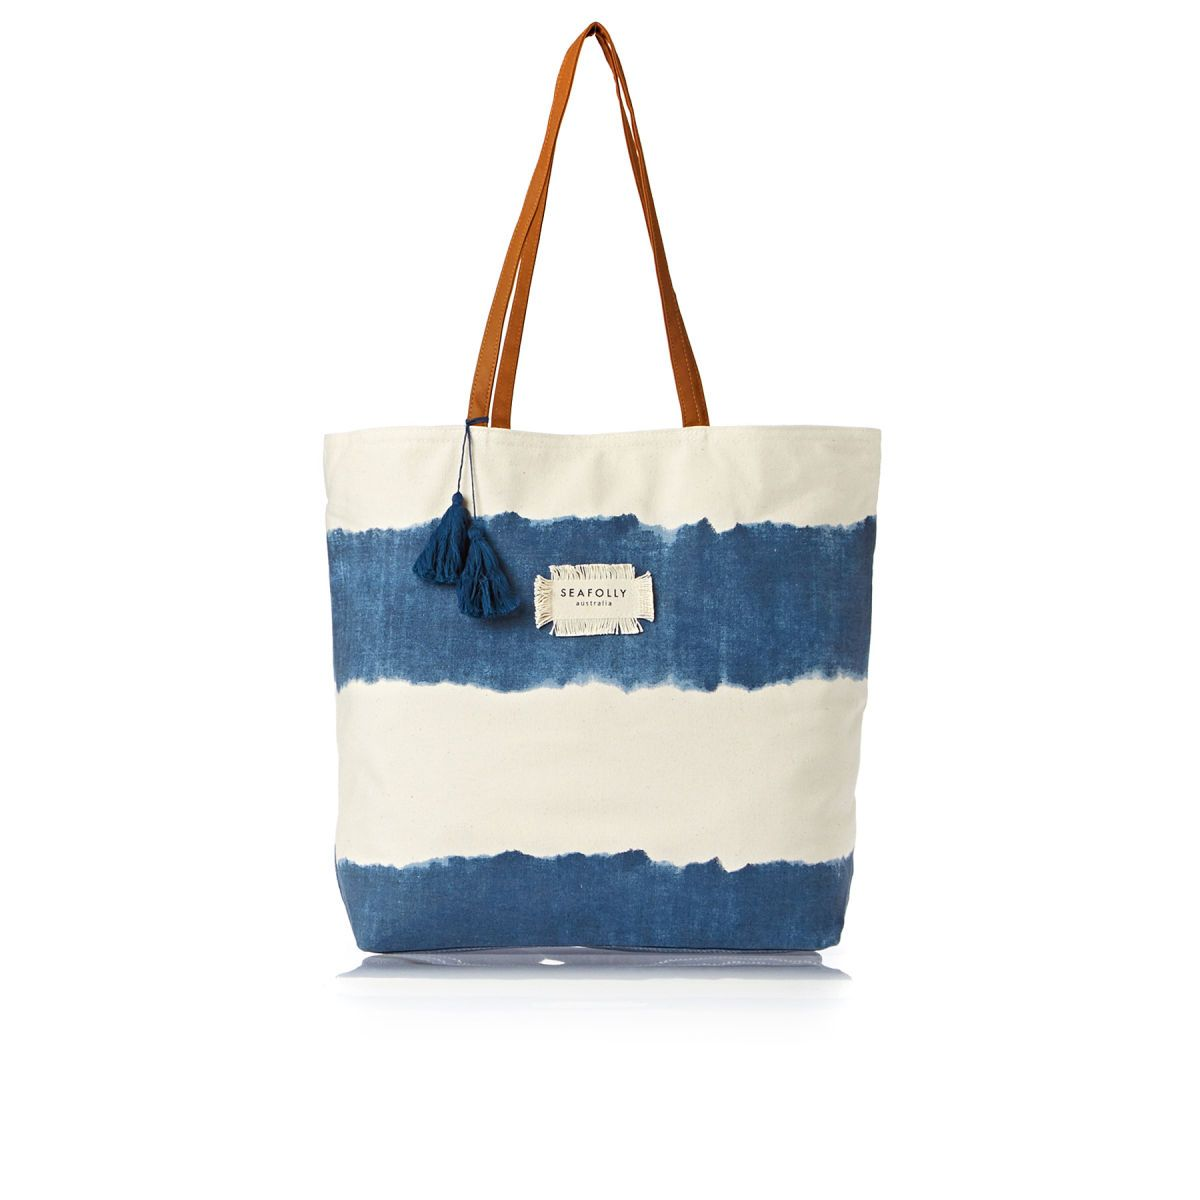 Seafolly Indian Summer Tote Beach Bag - Denim | vacation ...